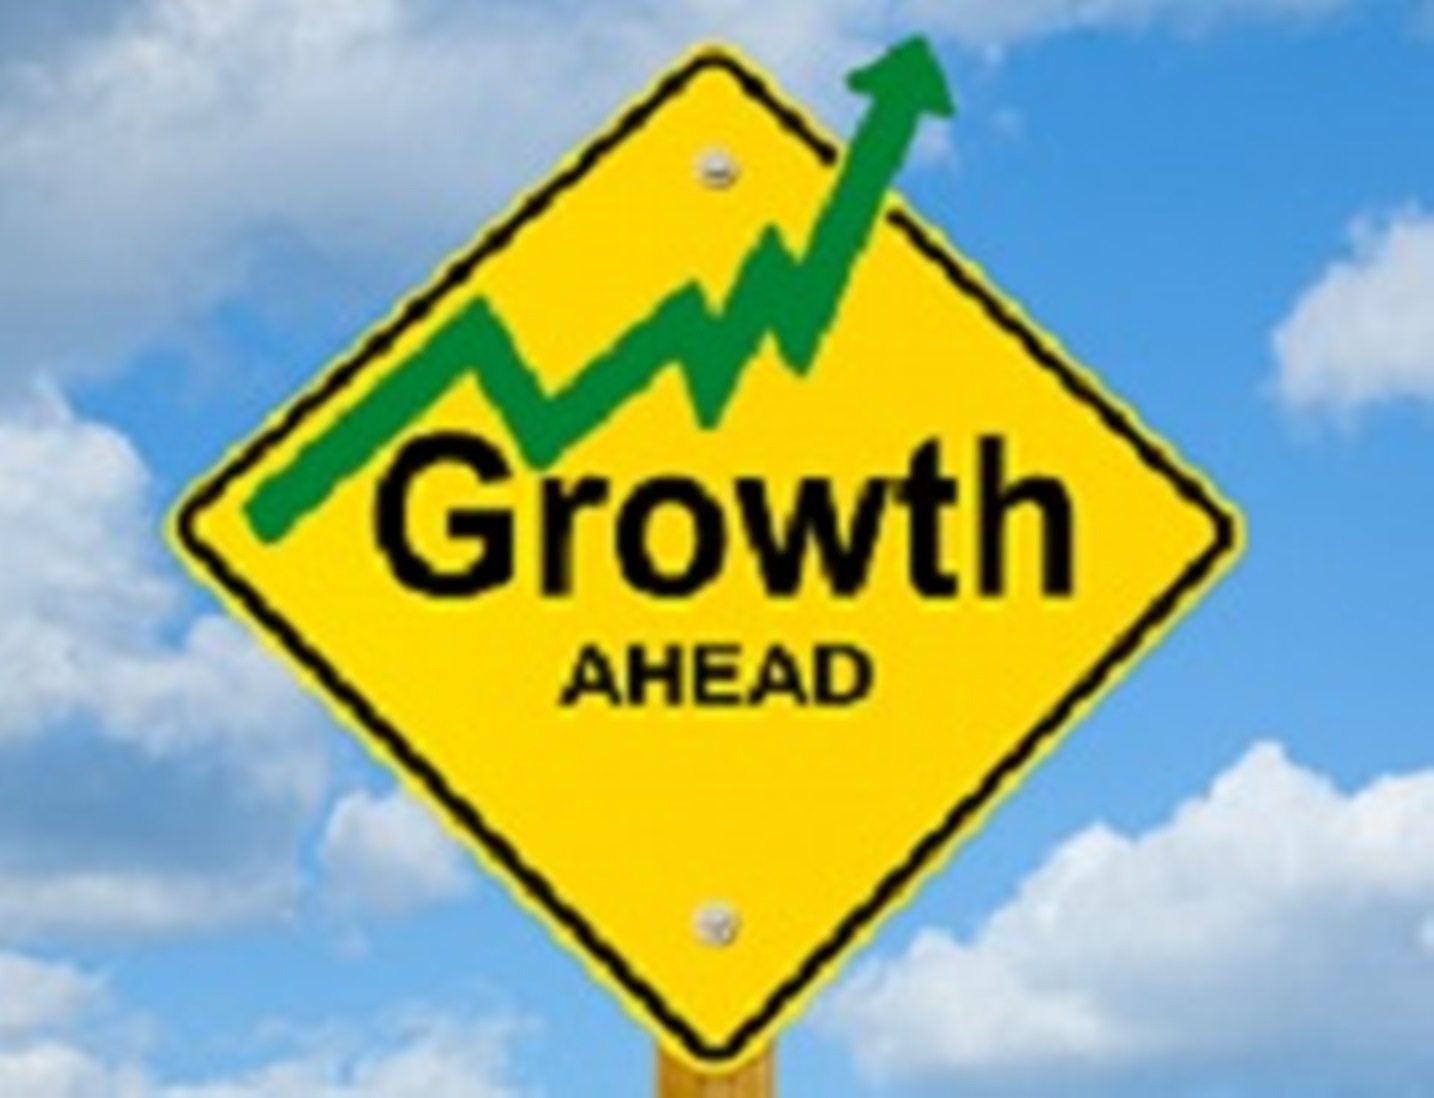 Tech M&A Monthly: 10 Ways to Increase Company Value - #5 & 6